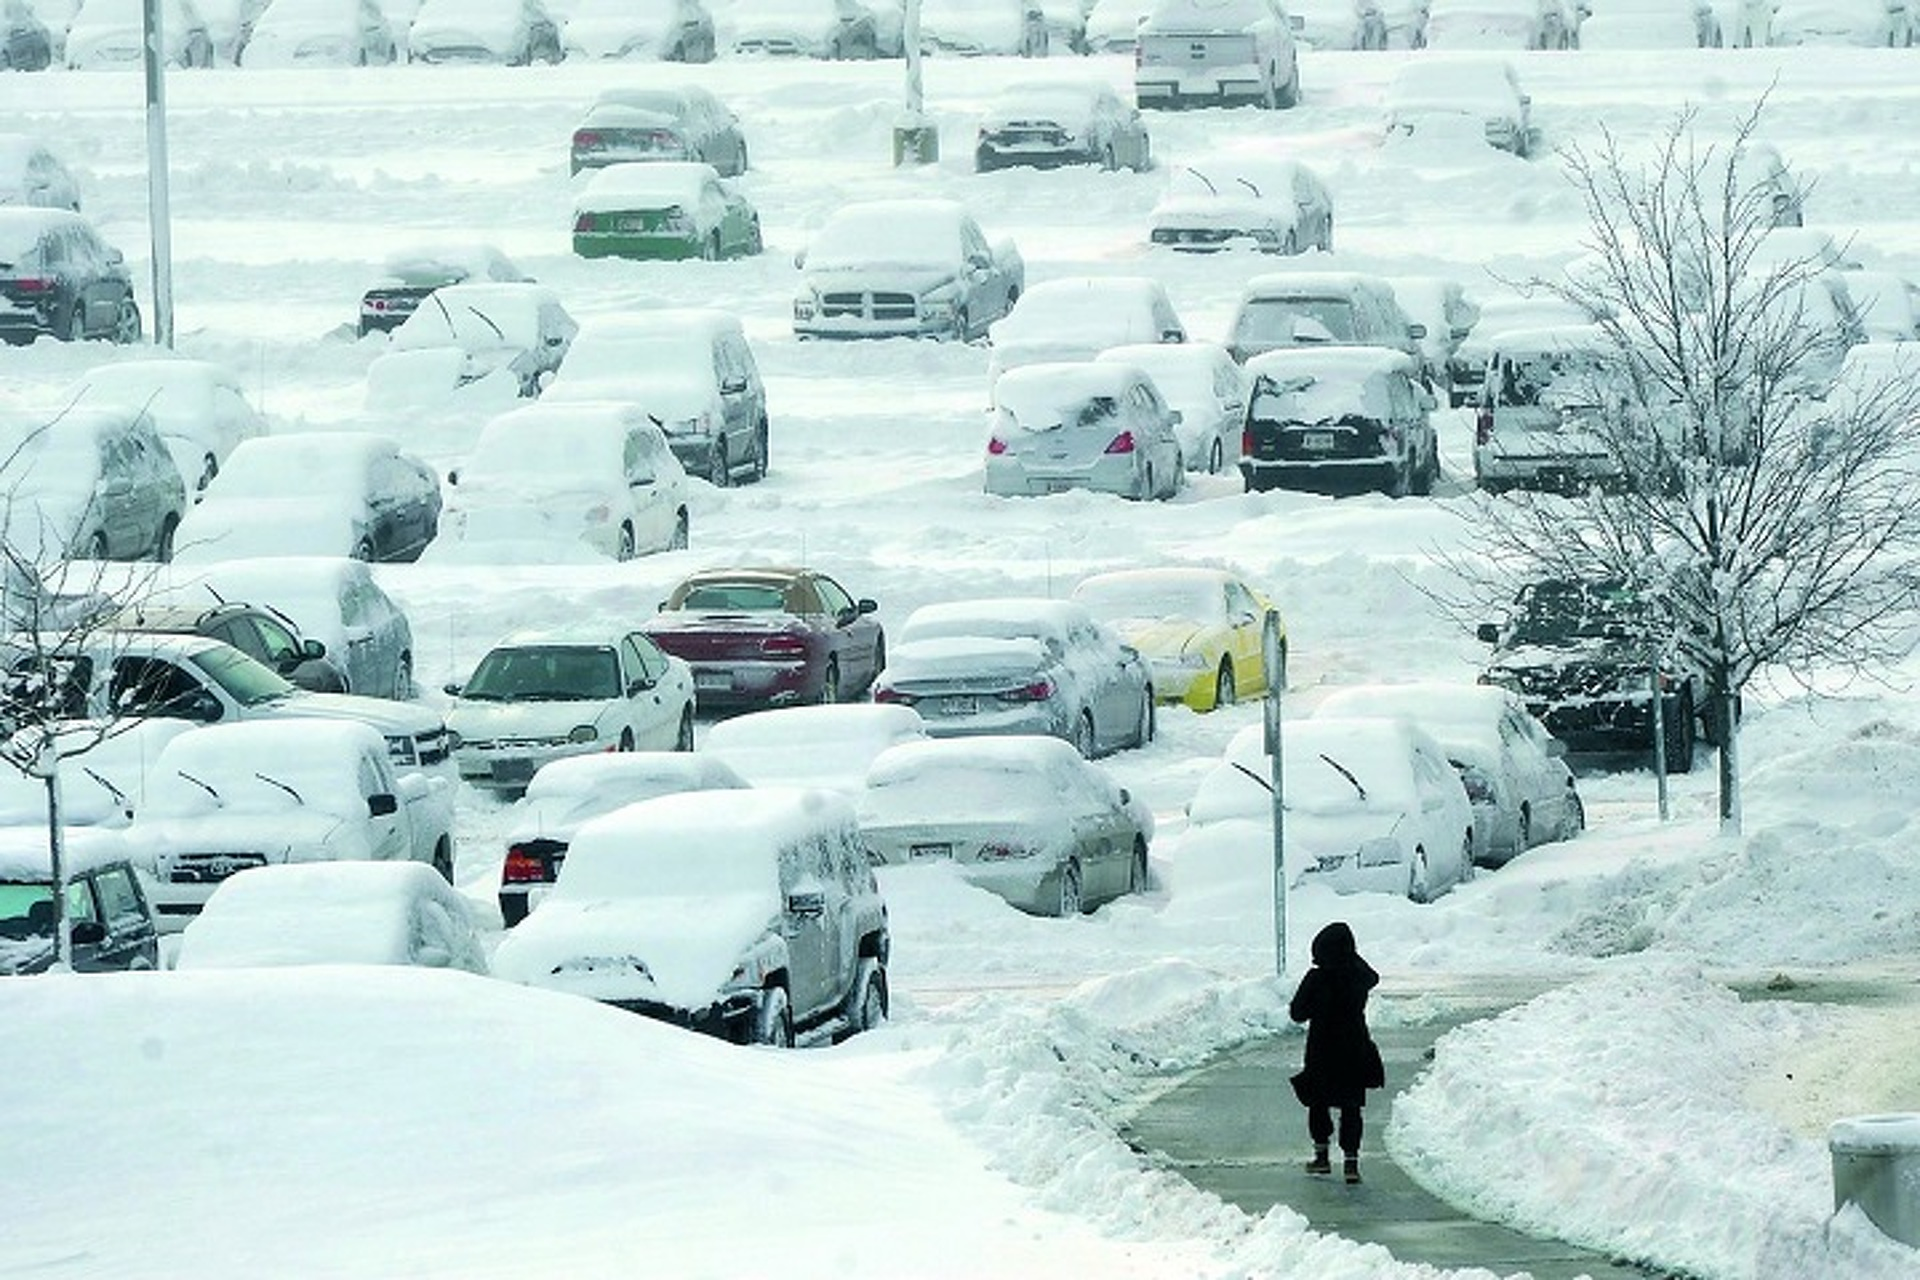 Before the Winter Blizzards, Learn How to Drive in Snow